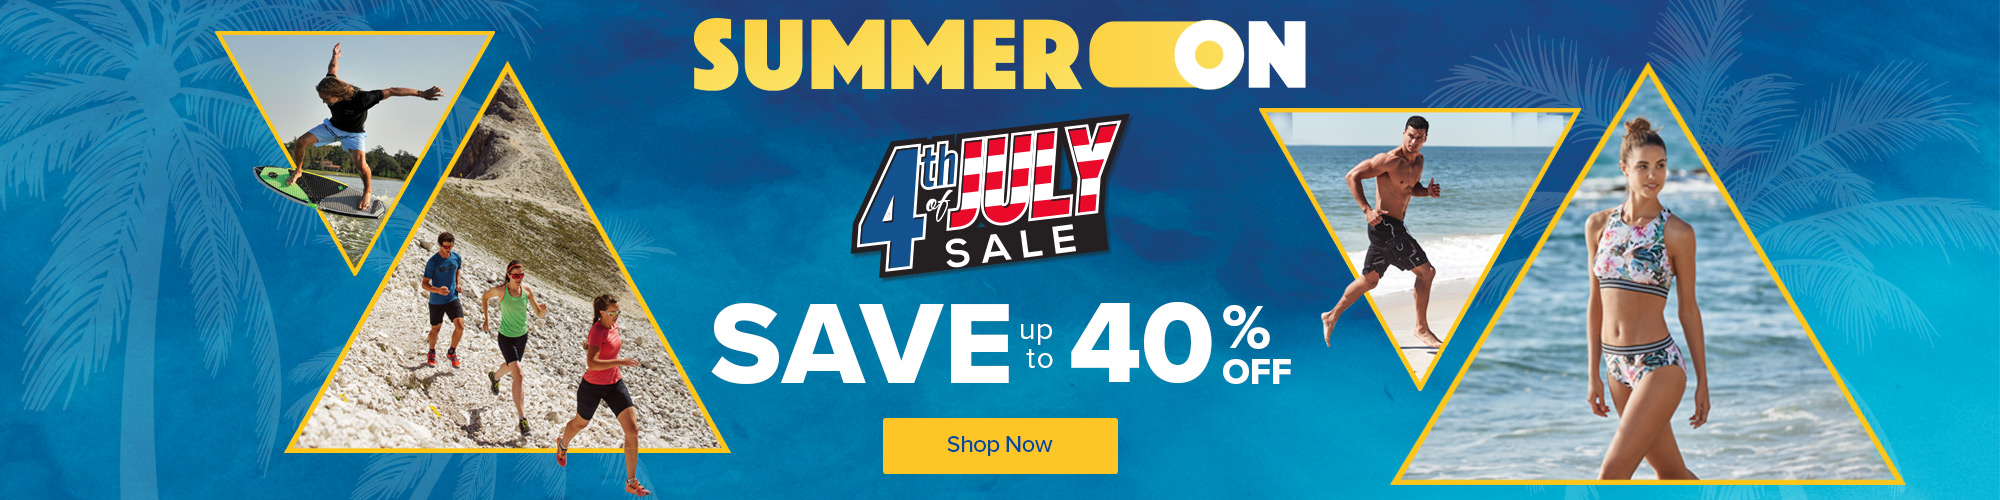 Summer On 4th July Save. Save up to 40% Off